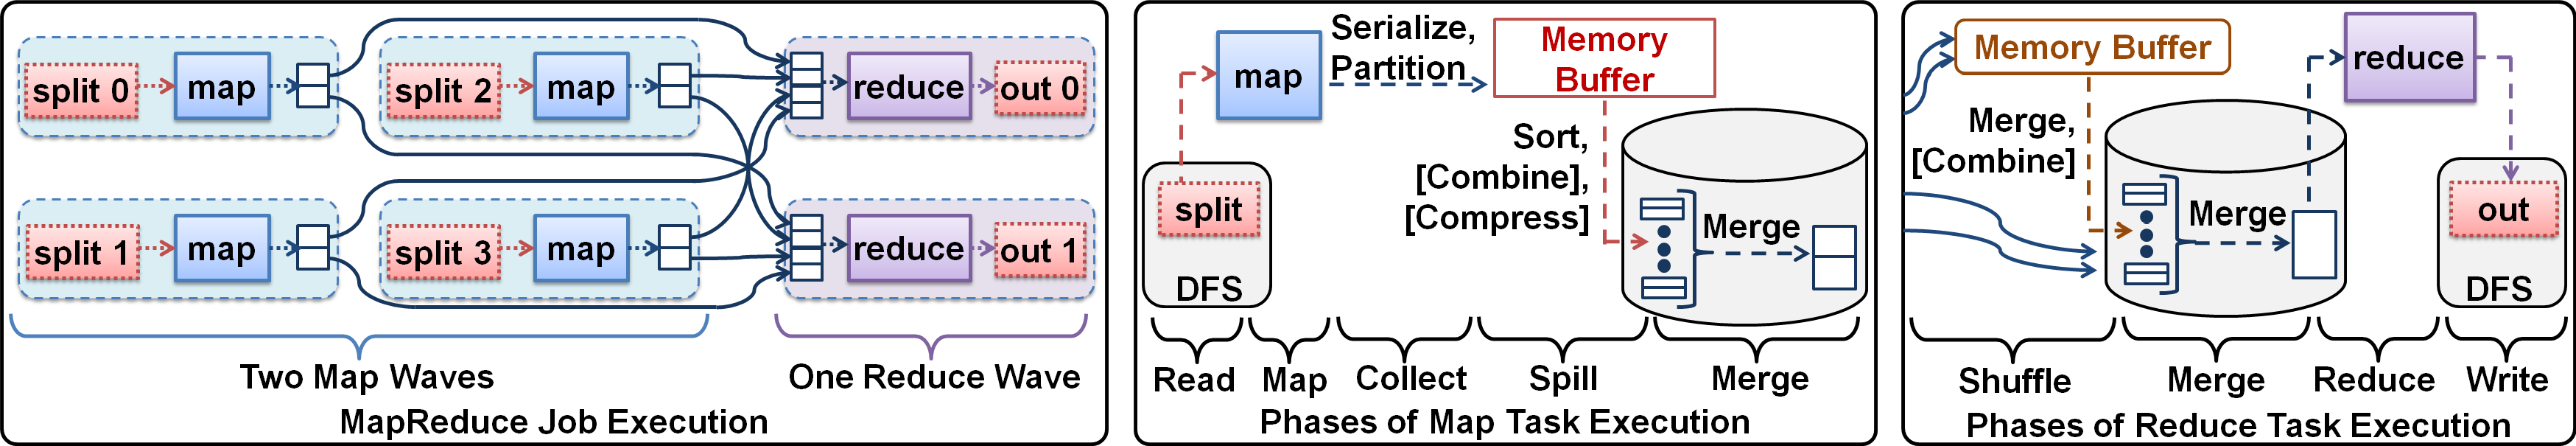 Figure 4: (a) Execution of a MapReduce job with 4 map tasks (executing in 2 waves) and 2 reduce tasks, (b) zoomed-in version of a map task execution showing the map-side phases, (c) zoomed-in version